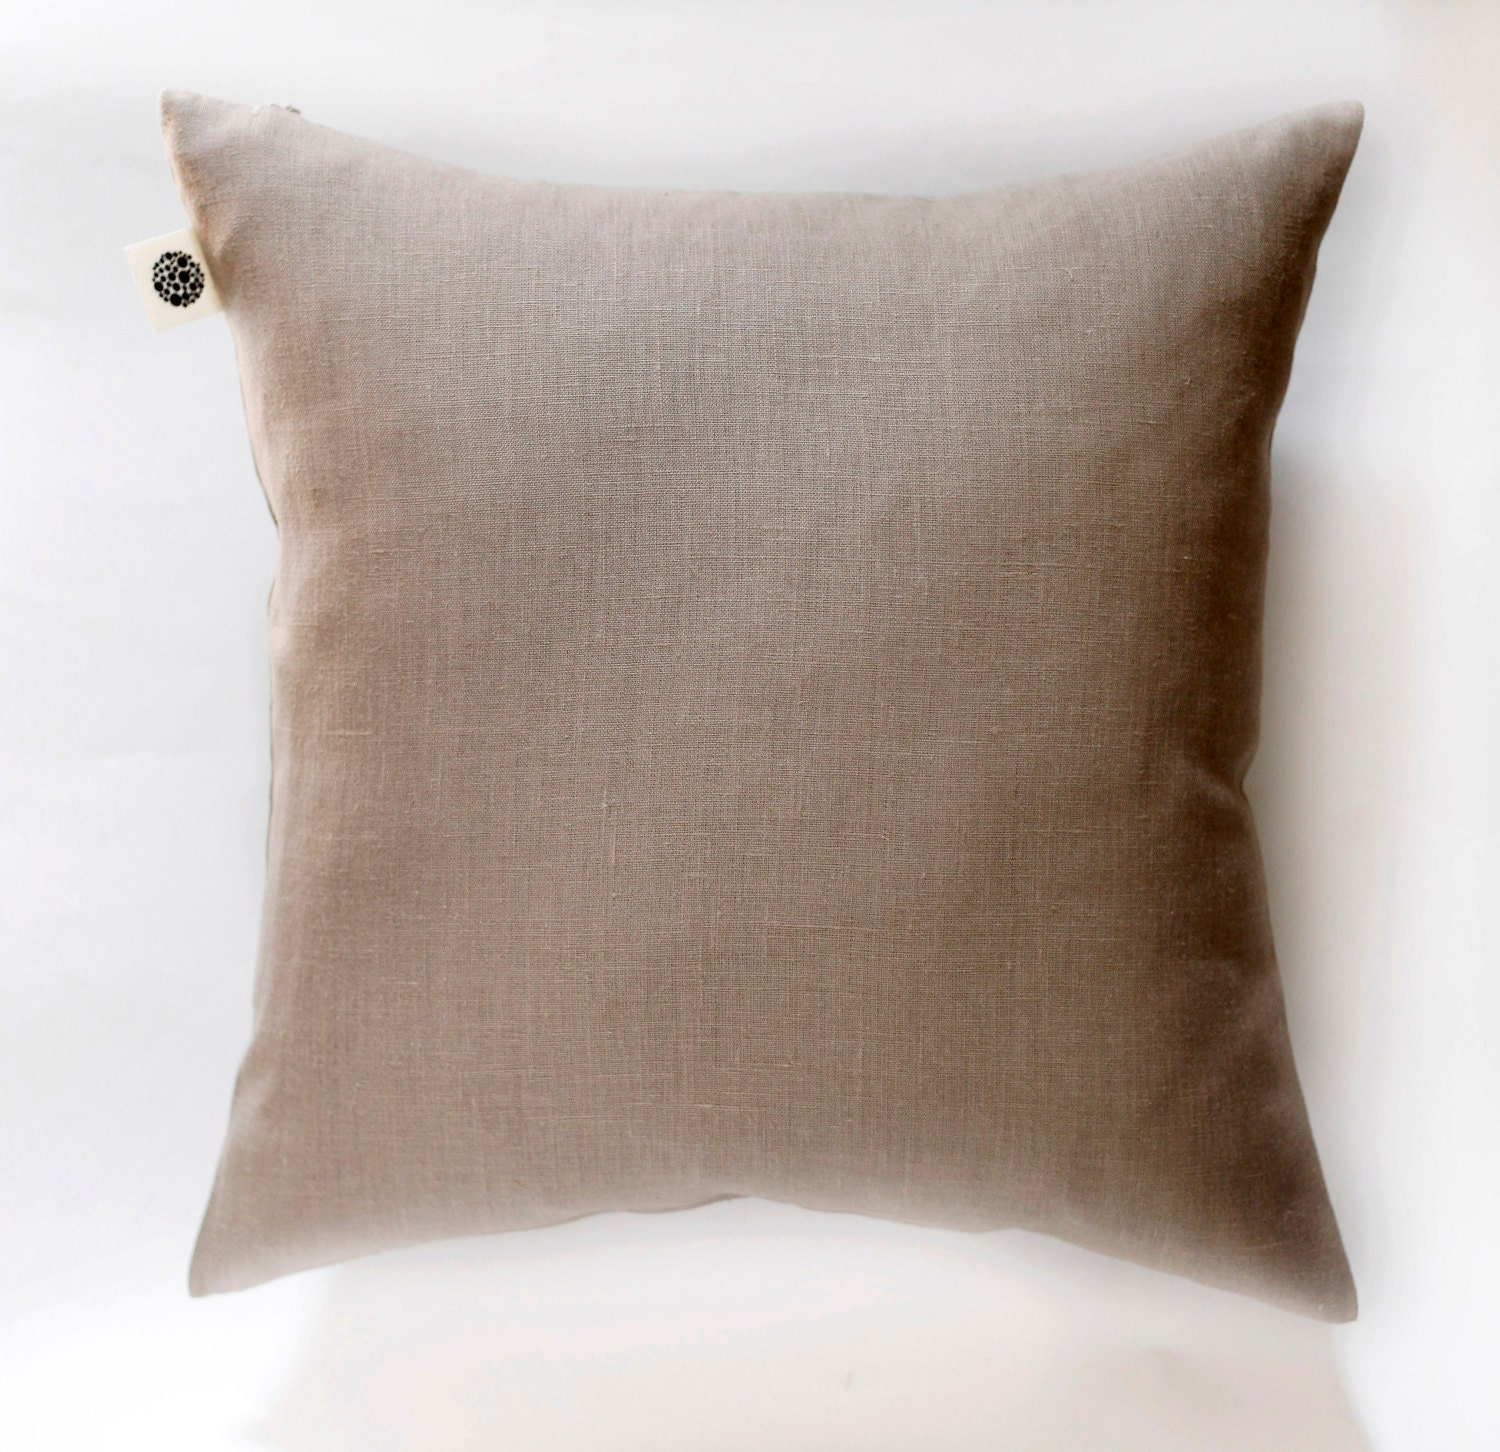 Taupe decorative pillow cover solid color pillows case